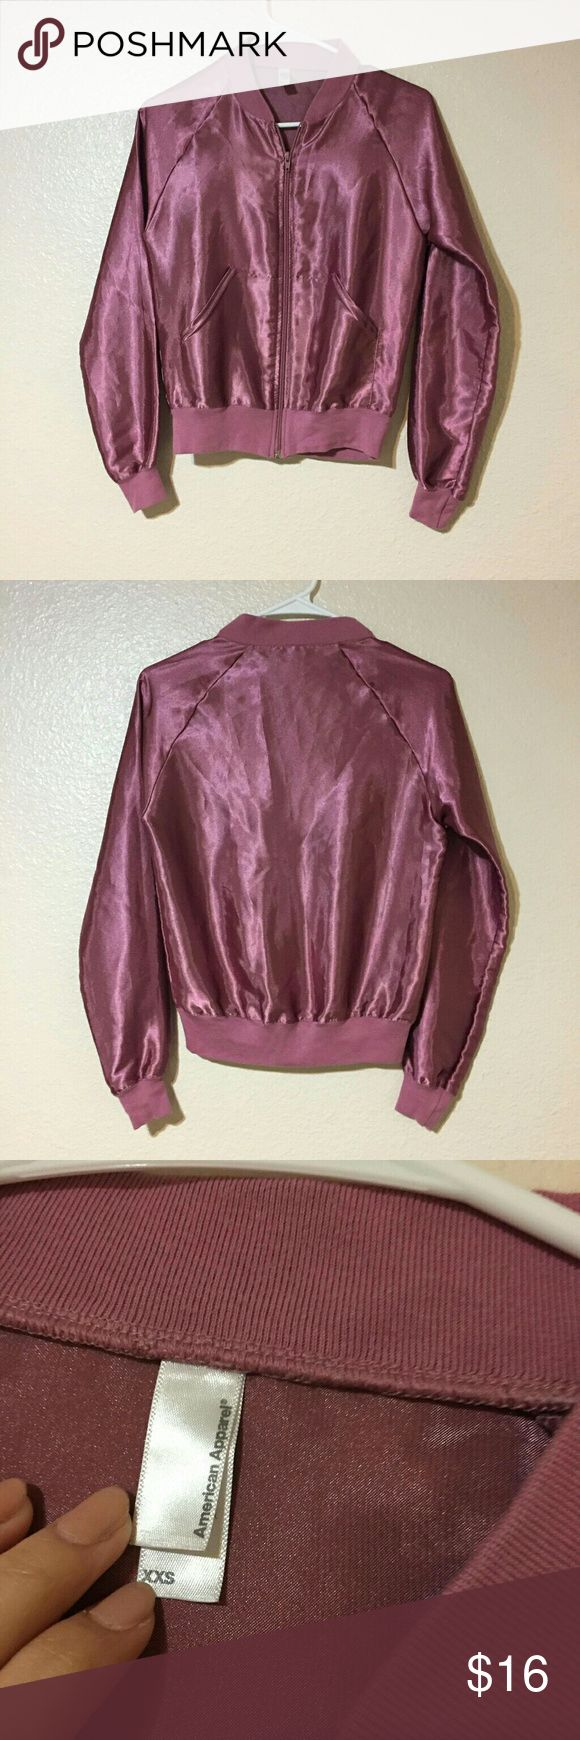 American Apparel satin bomber American Apparel light purple silky bomber jacket. Great condition, but it does have a few snags that are not noticeable when worn. Fits an xs perfectly. American Apparel Jackets & Coats